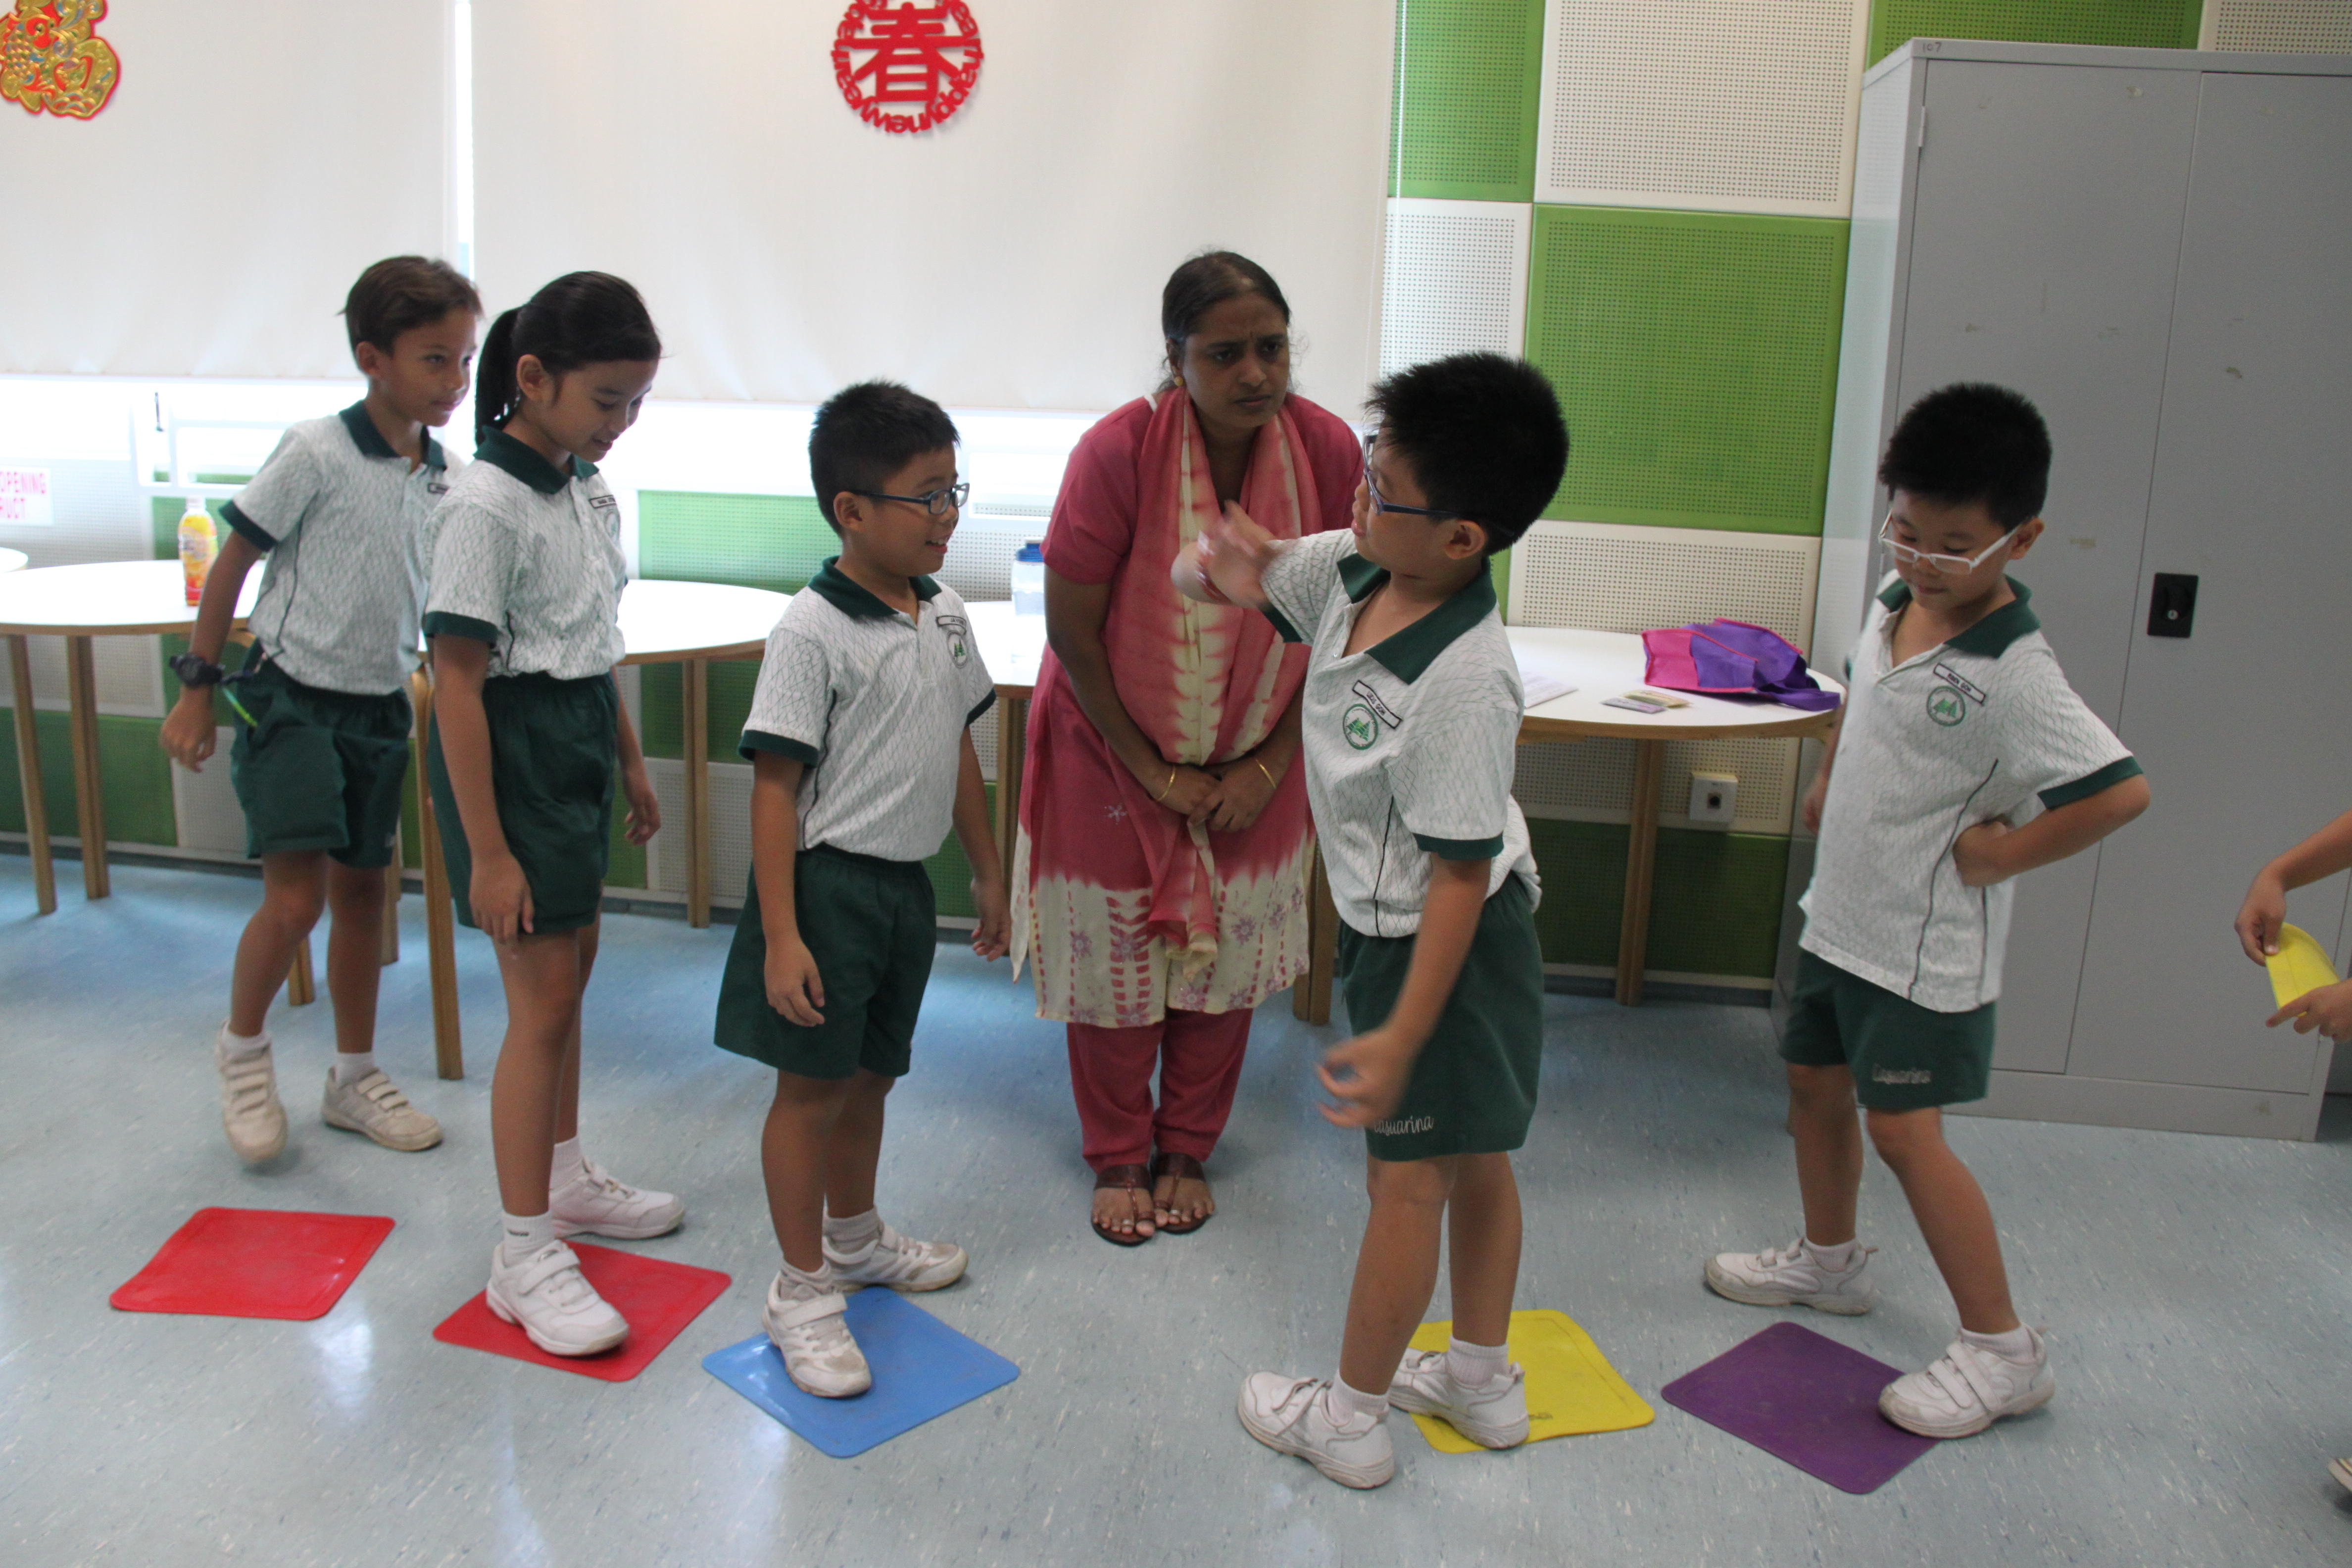 Maths@play casuarina student primary school games